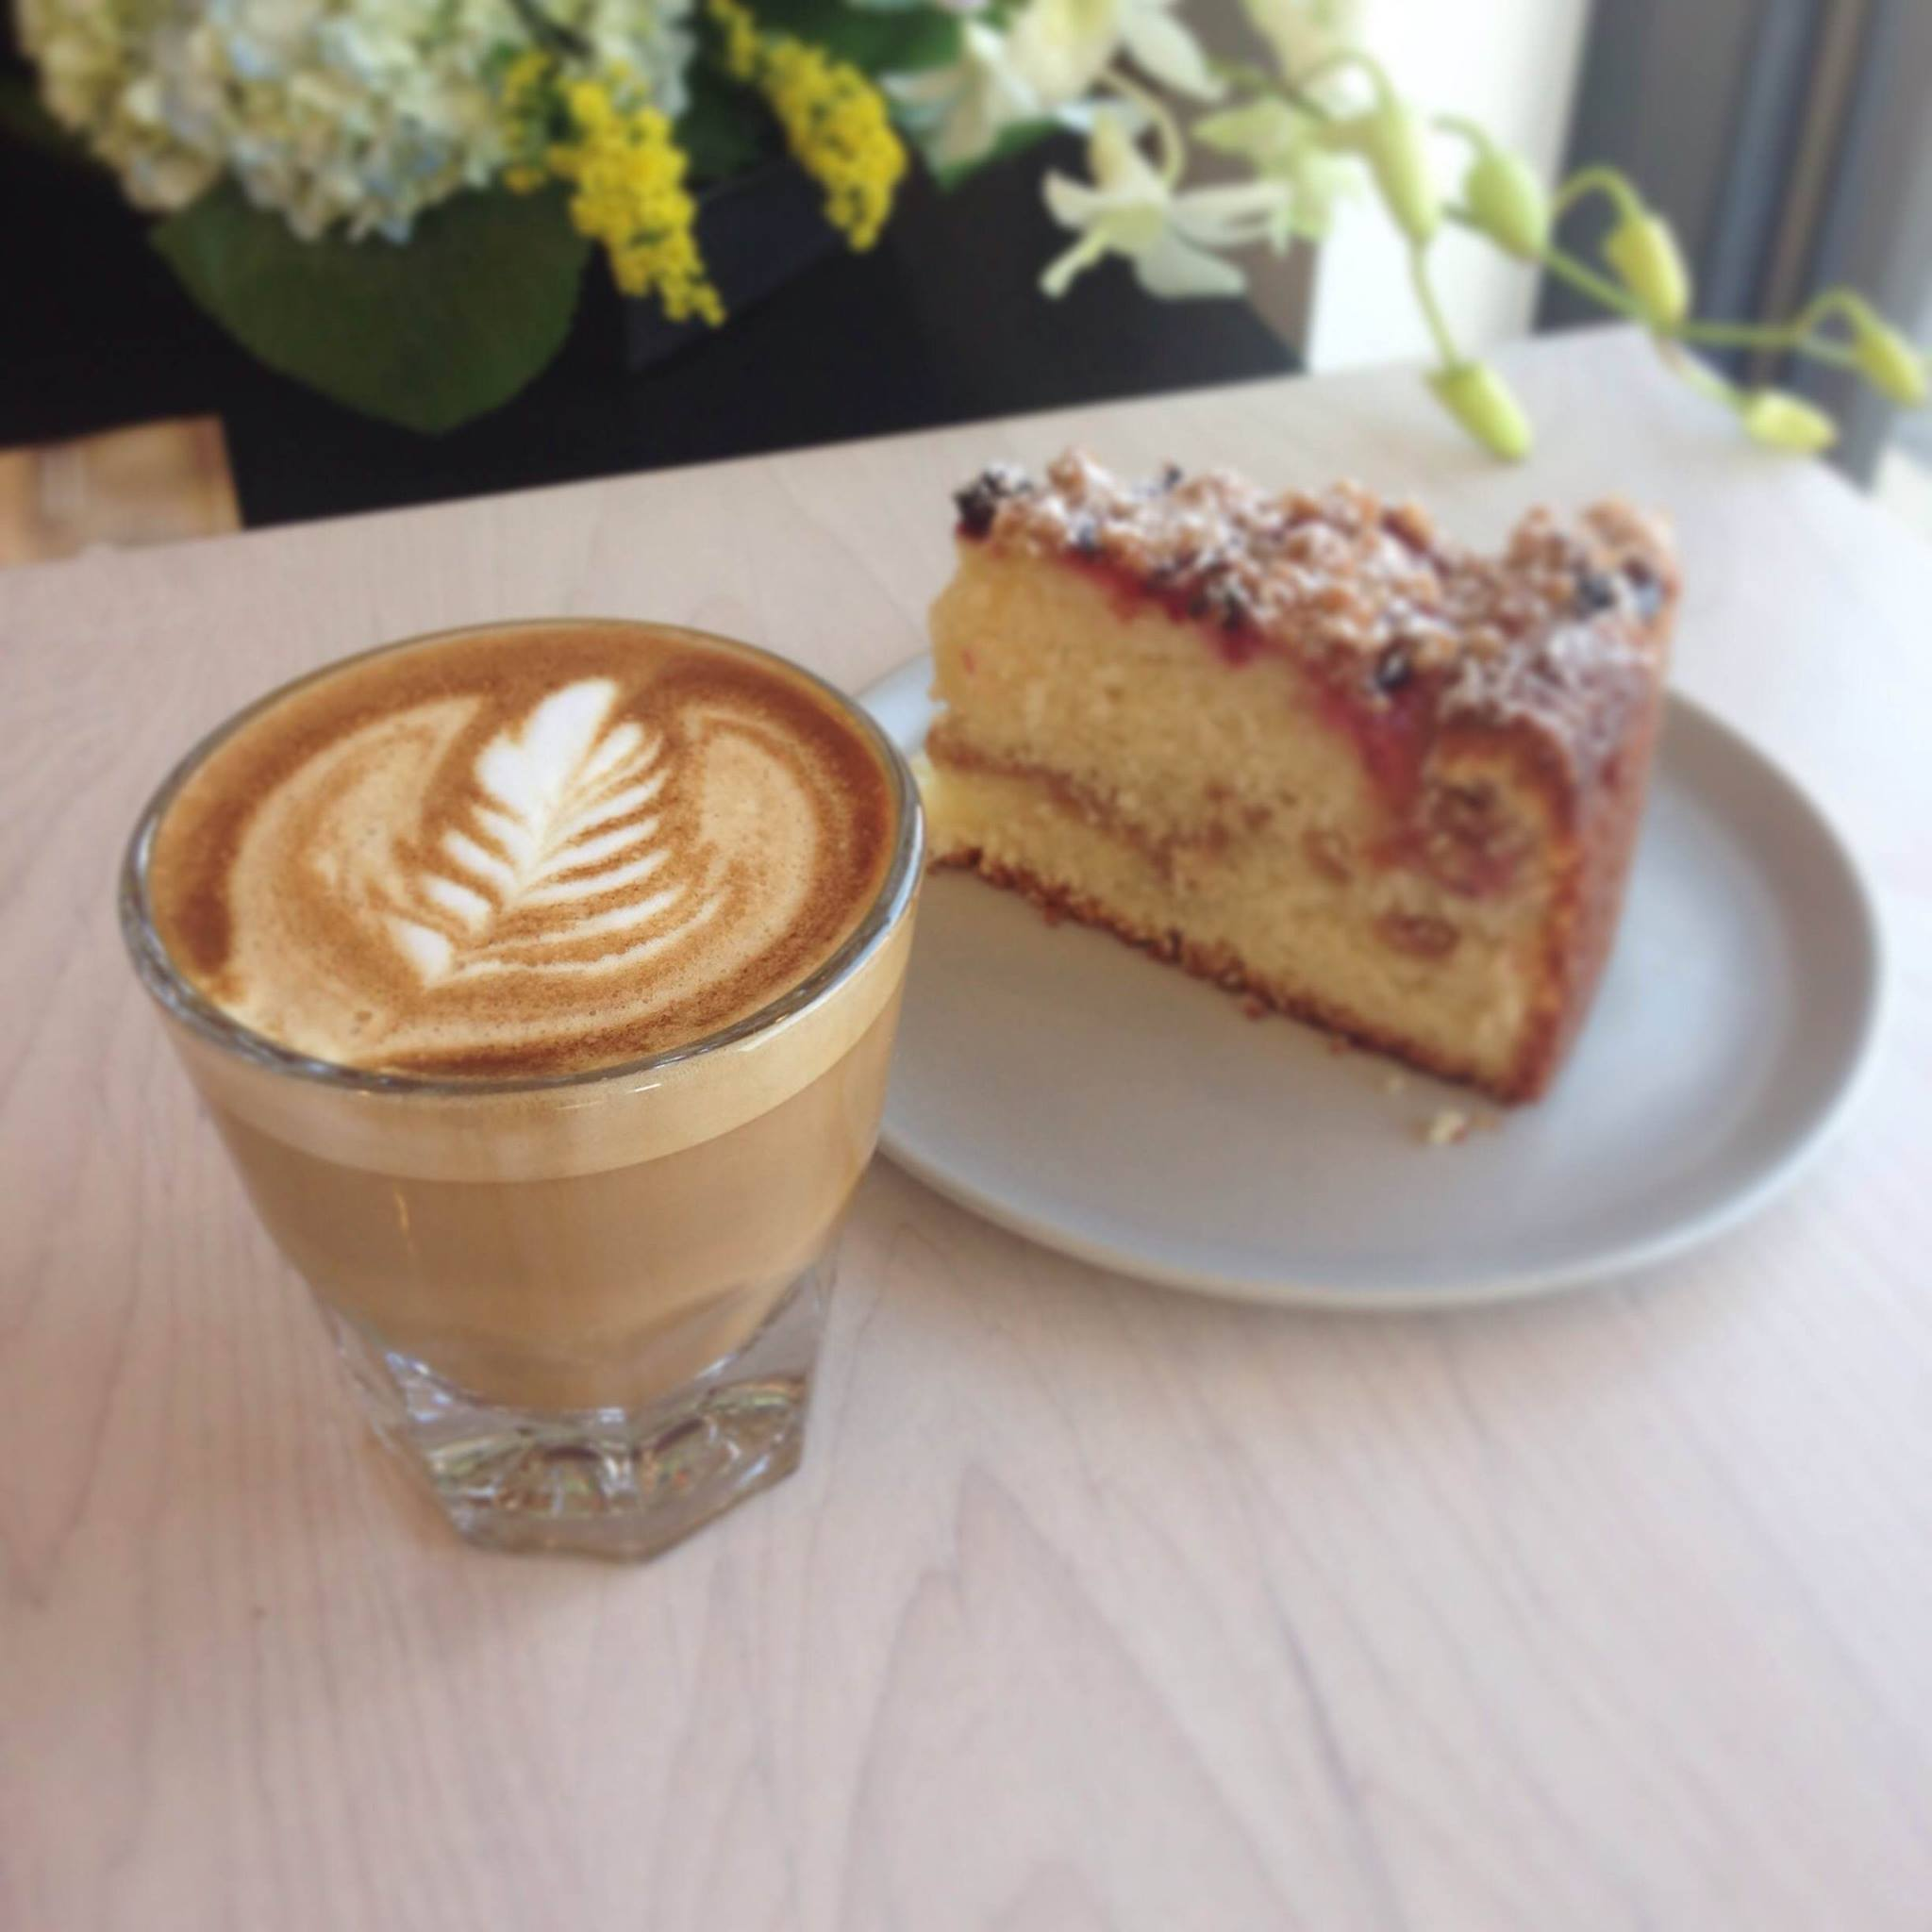 Patika's coffee and baked good